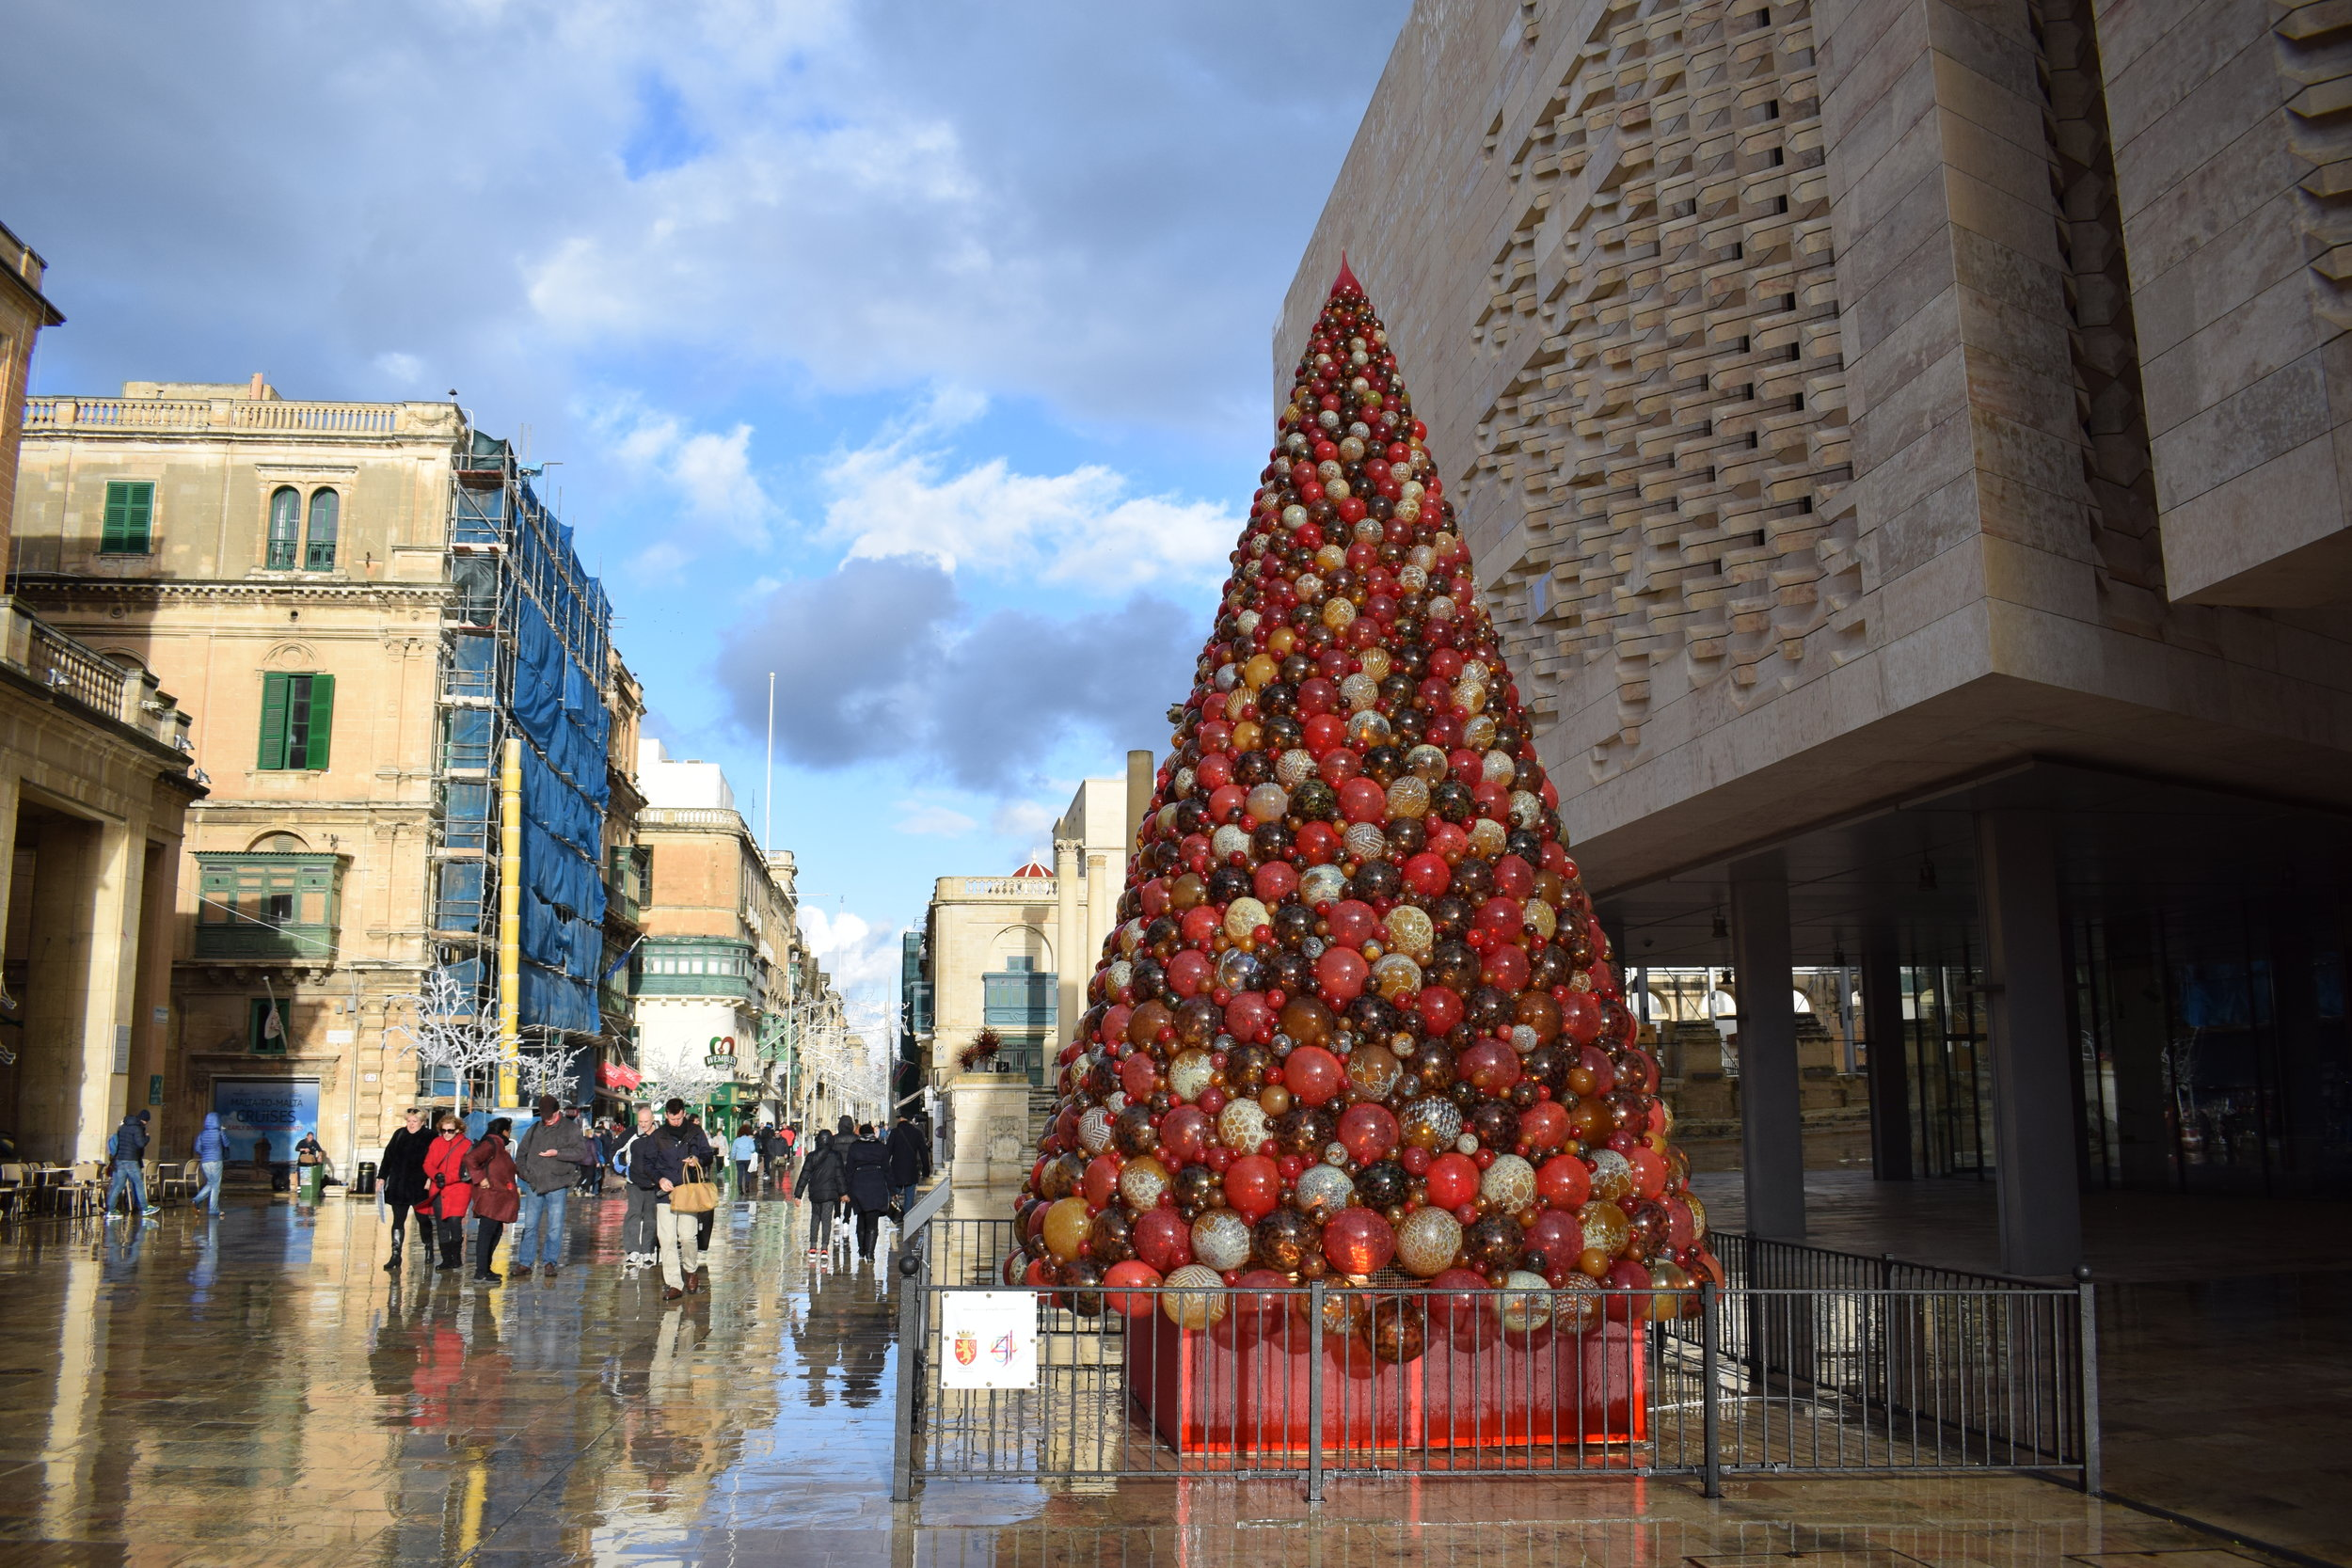 The famous Mdina Glass Christmas tree in Valletta.